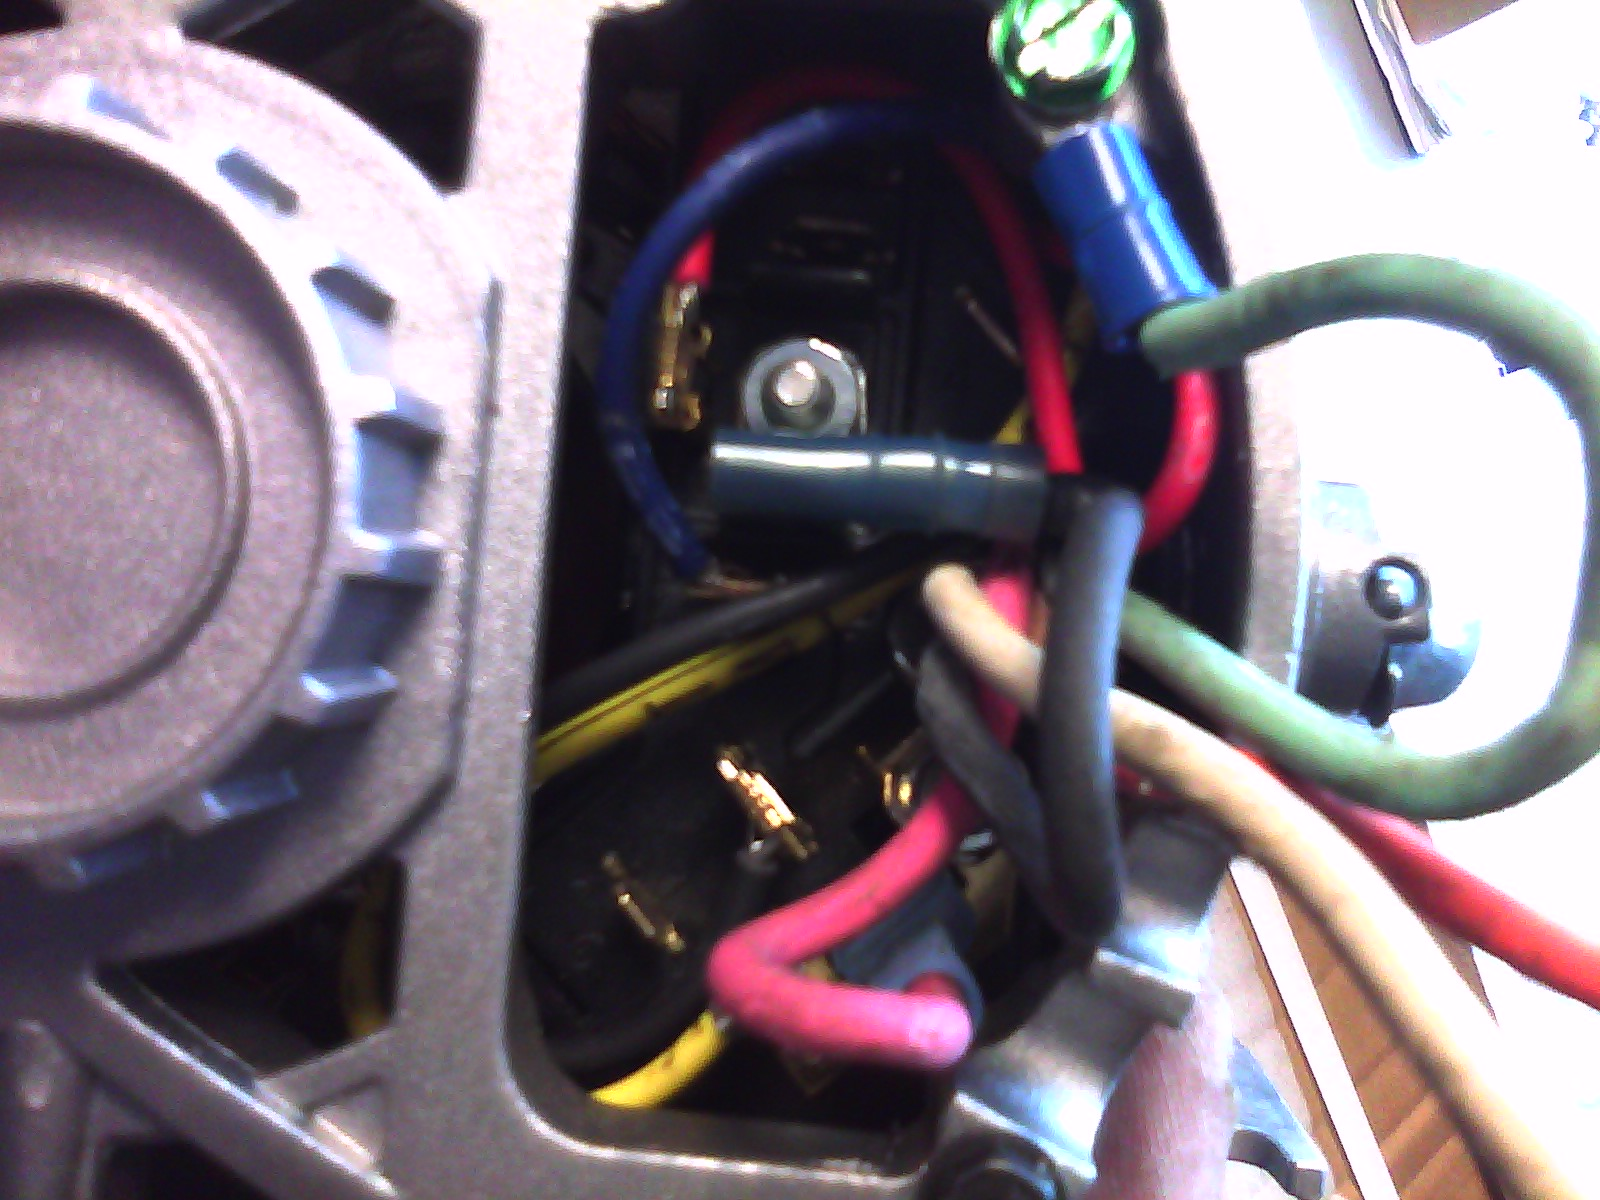 Need Help With The Wiring  U0026 Replacing Old Motor With